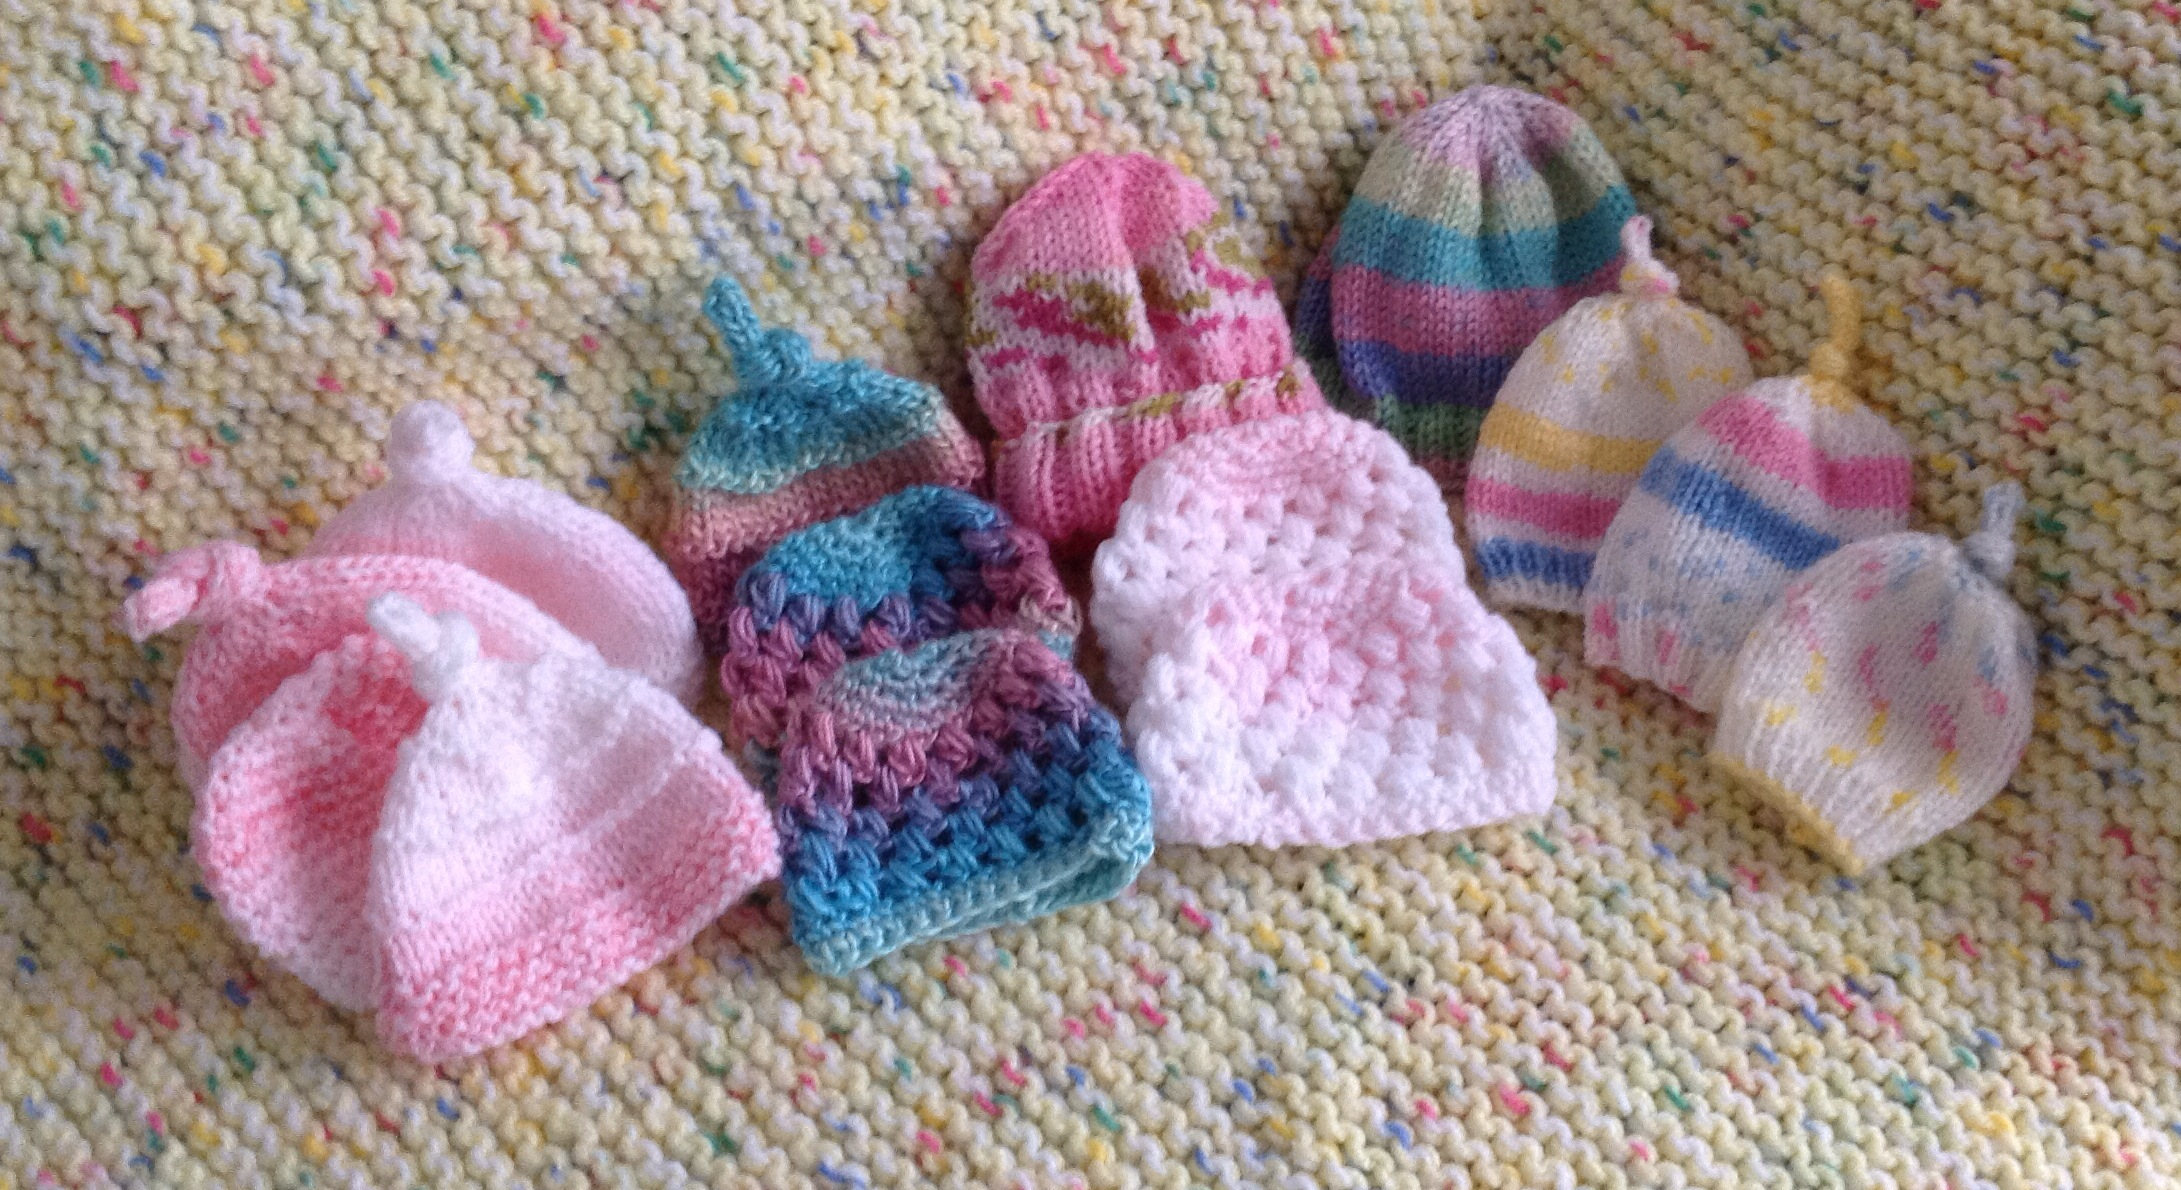 The tiniest hats are for preemies. fff090b0502